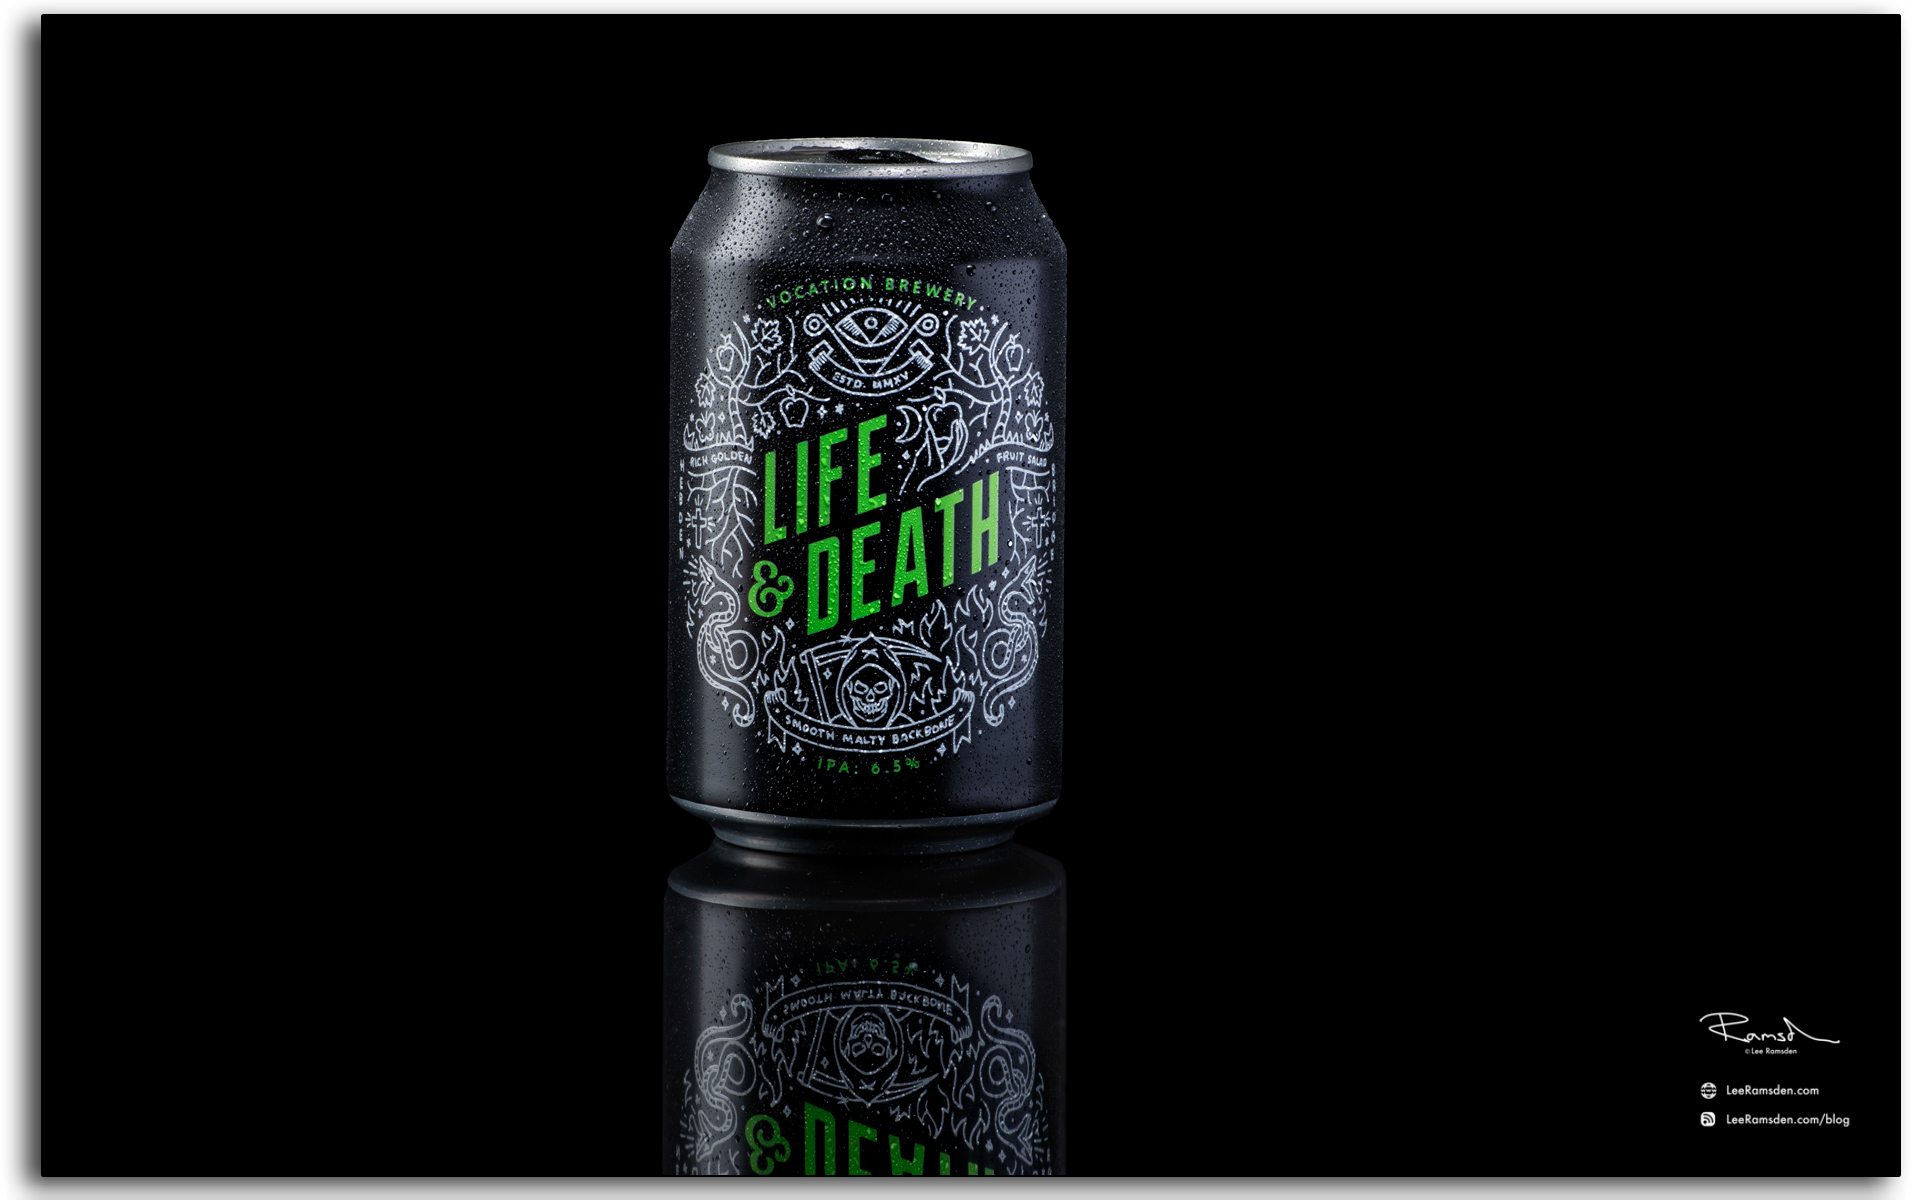 beer, life, death, &, and, vocational brewery, hebden bridge, yorkshire, lancashire, brewer, lee ramsden